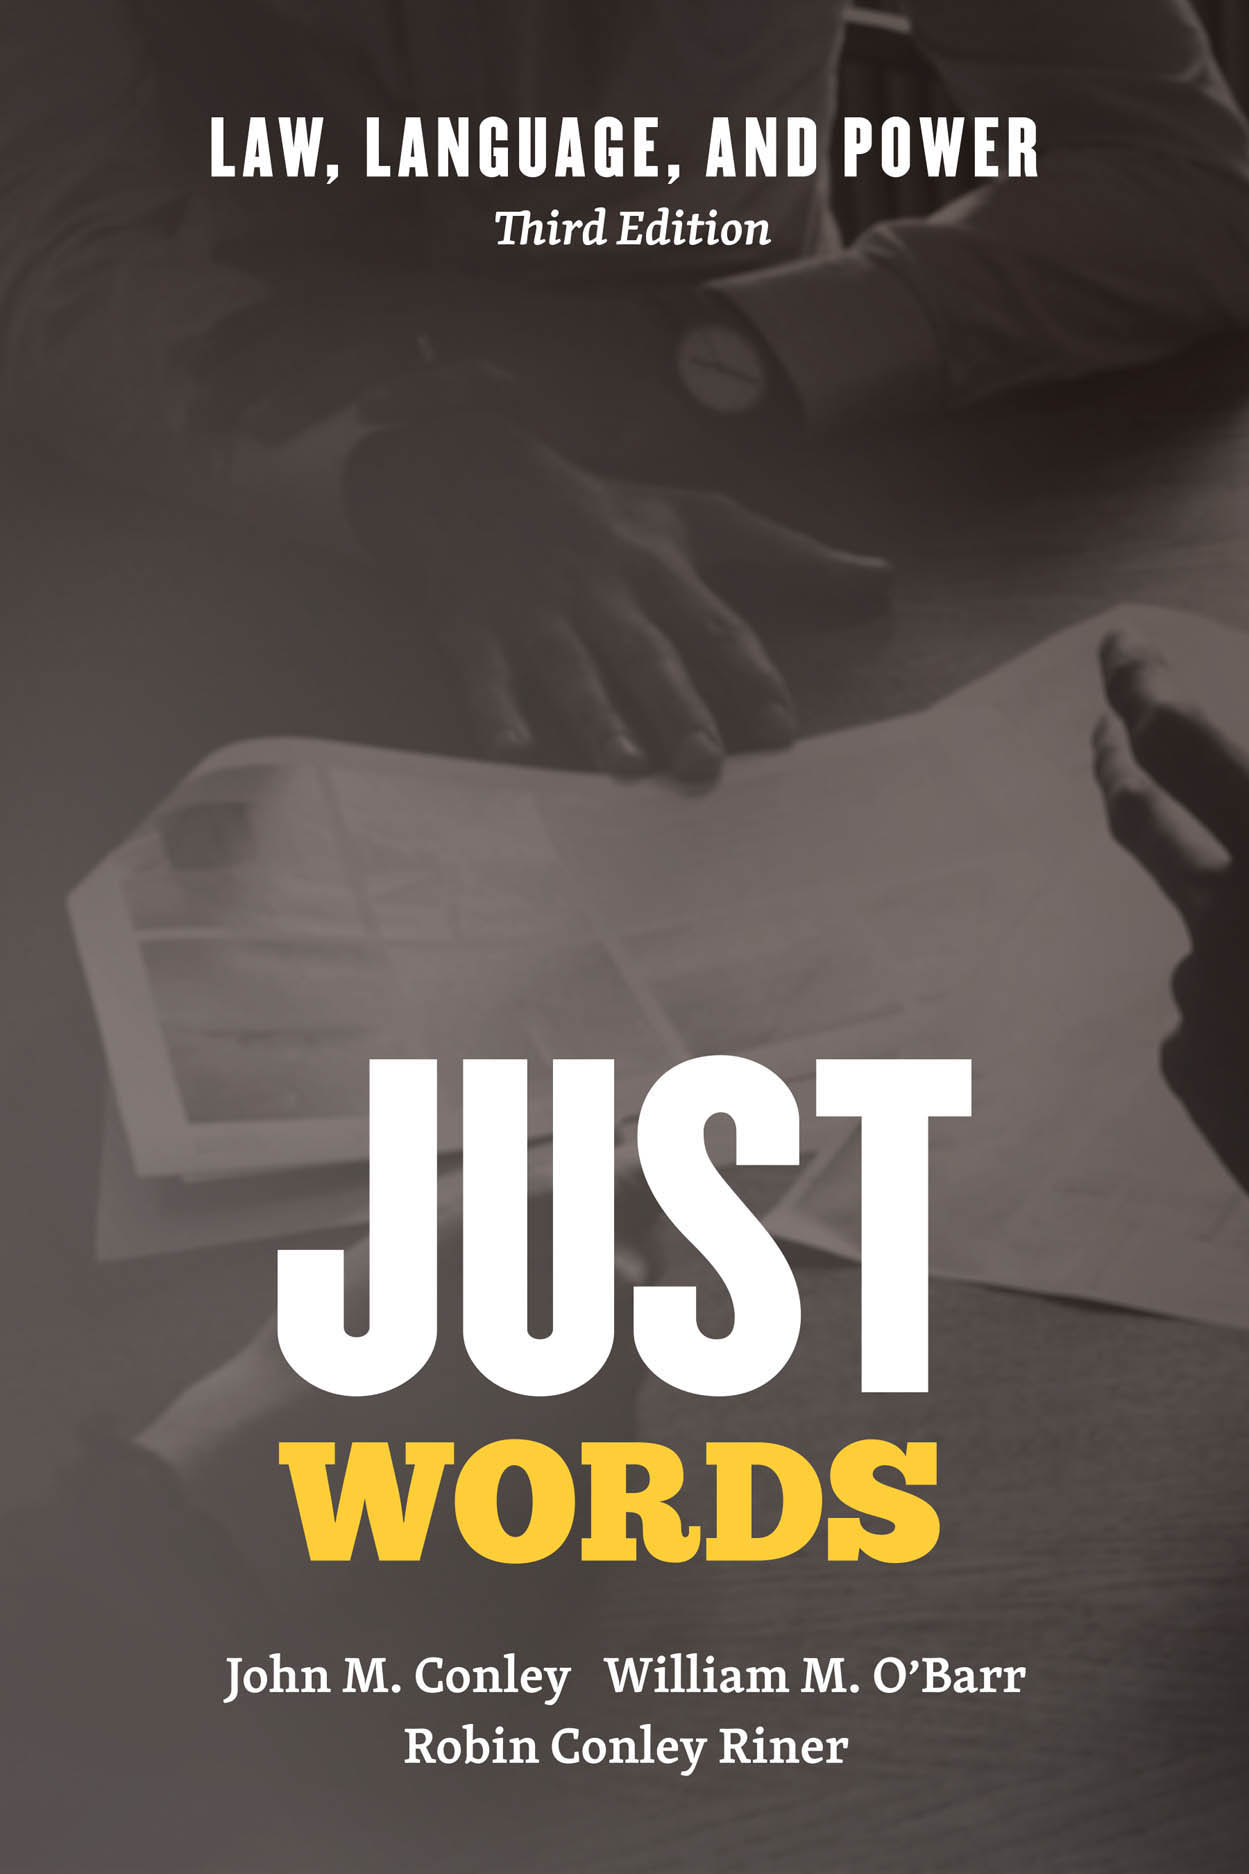 Just Words: Law, Language, and Power, Third Edition